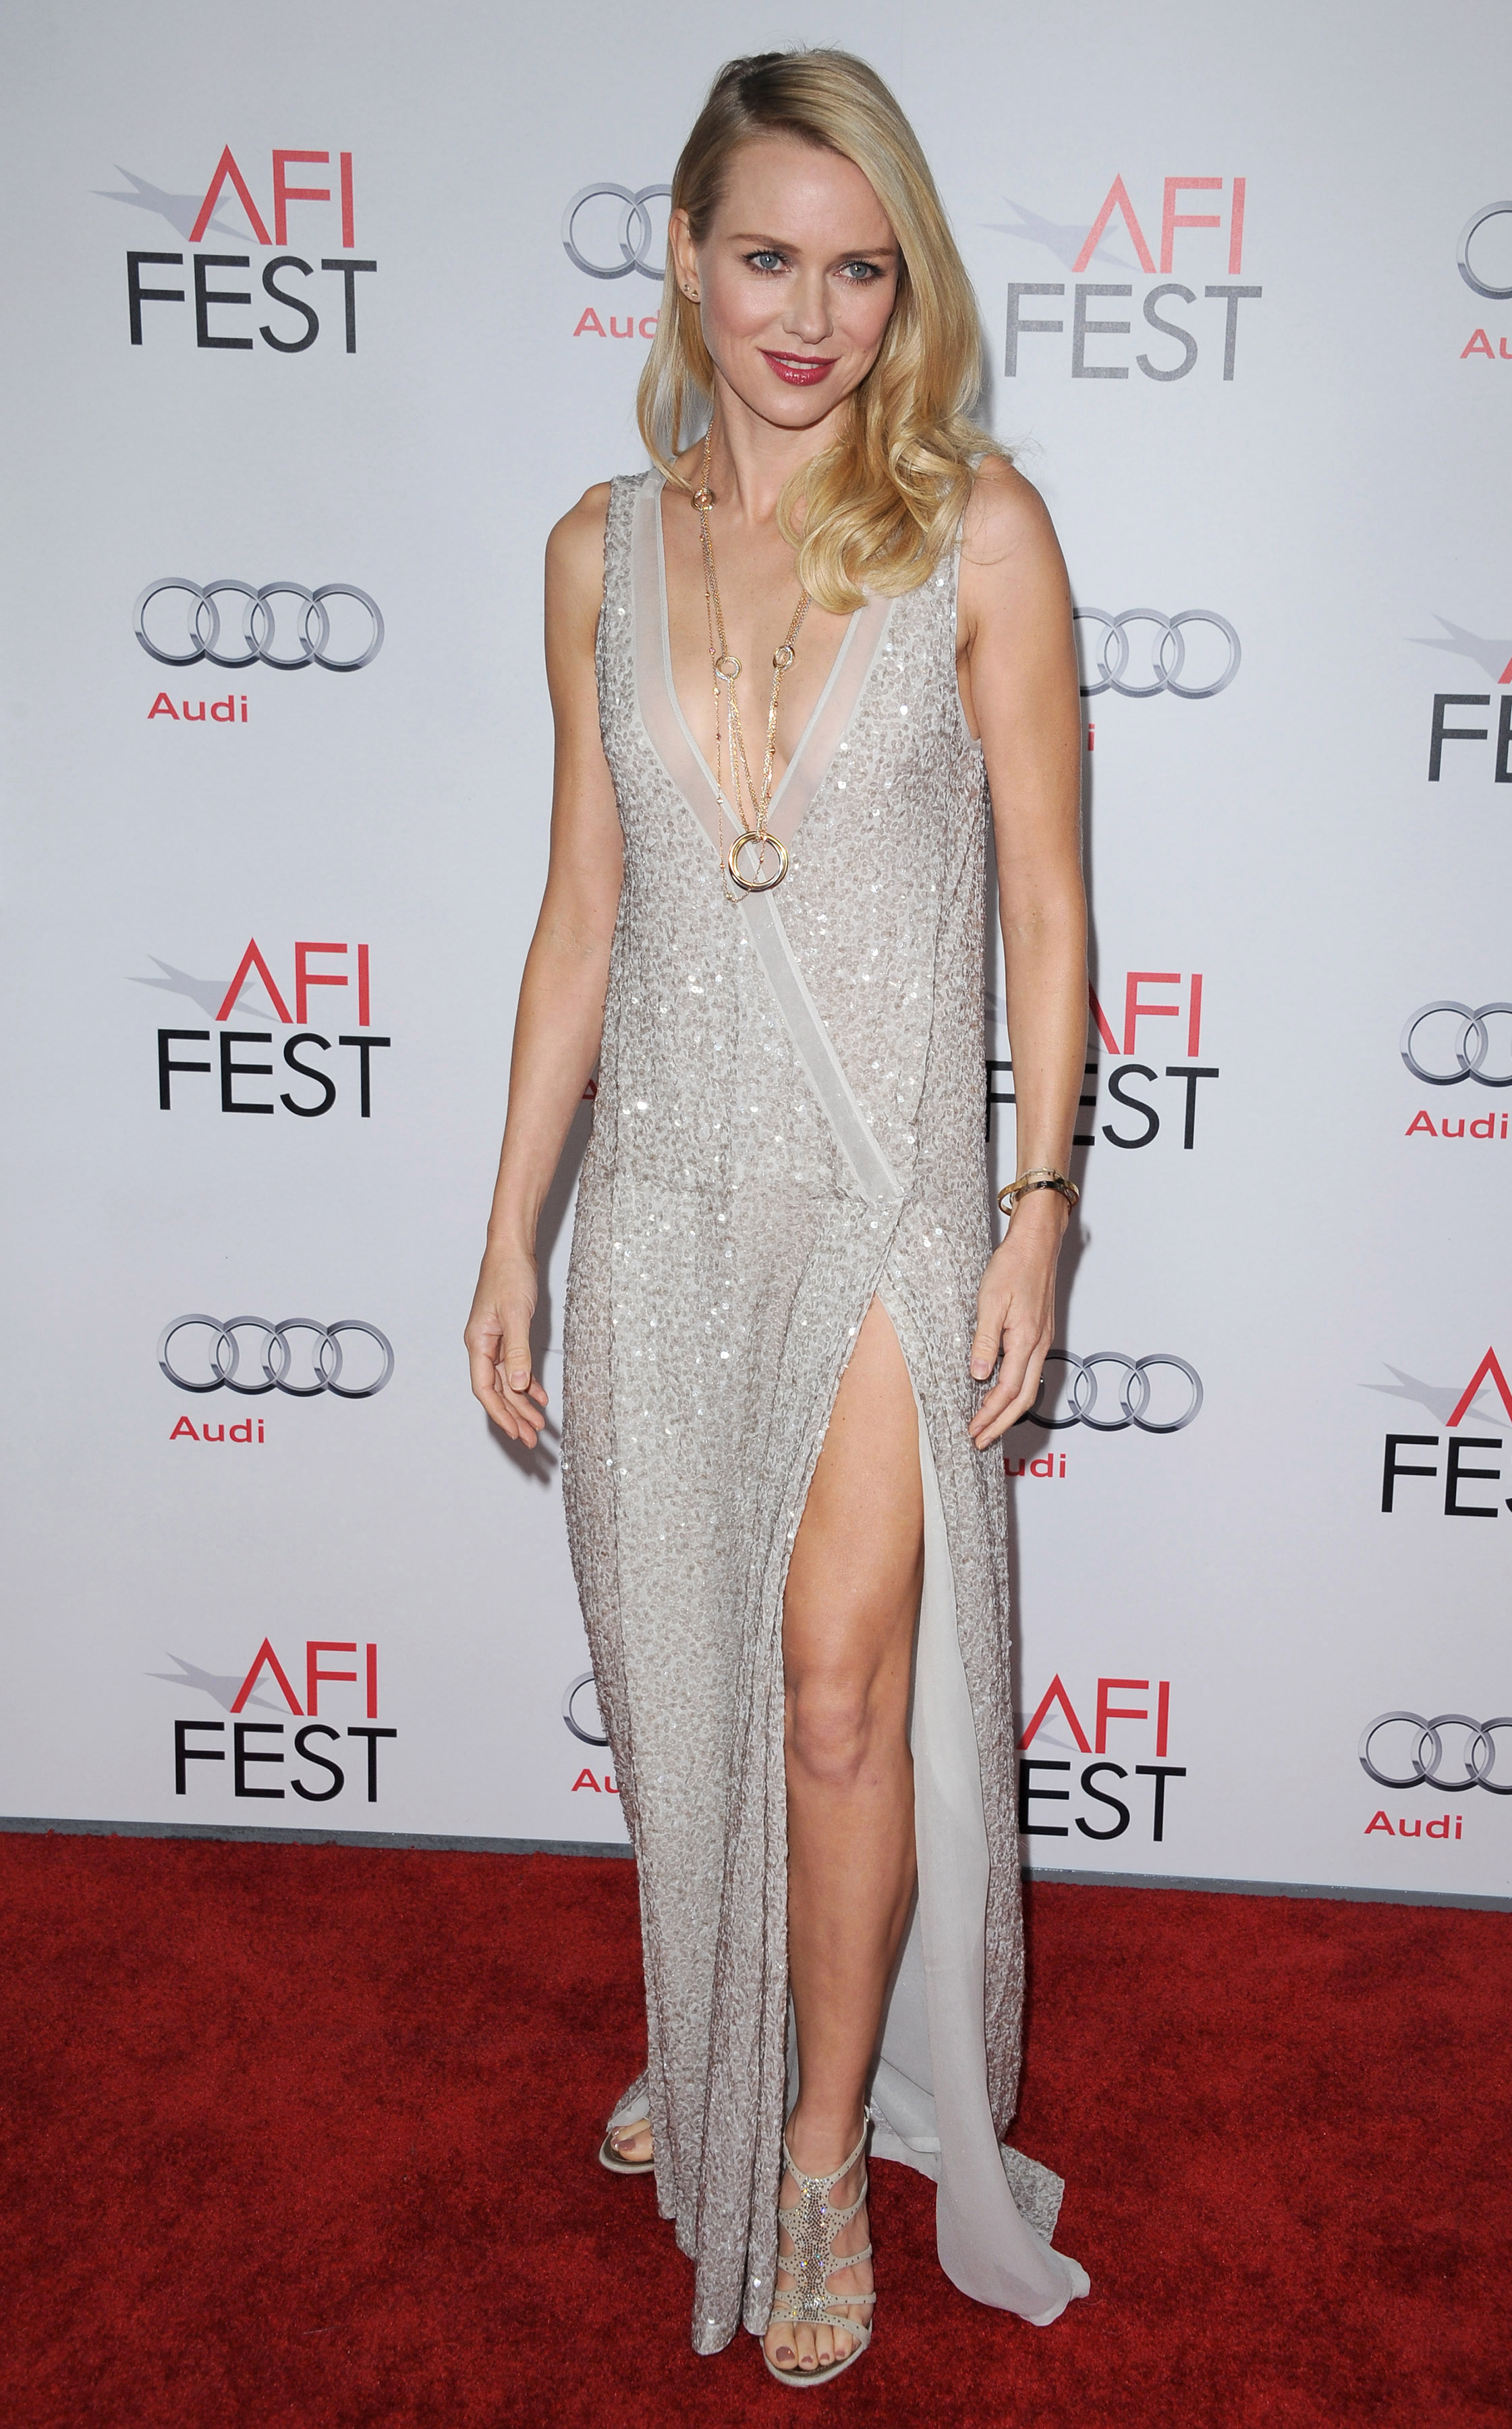 Naomi Watts – Hot in Long Dress at J Edgar Premiere-02 – GotCeleb